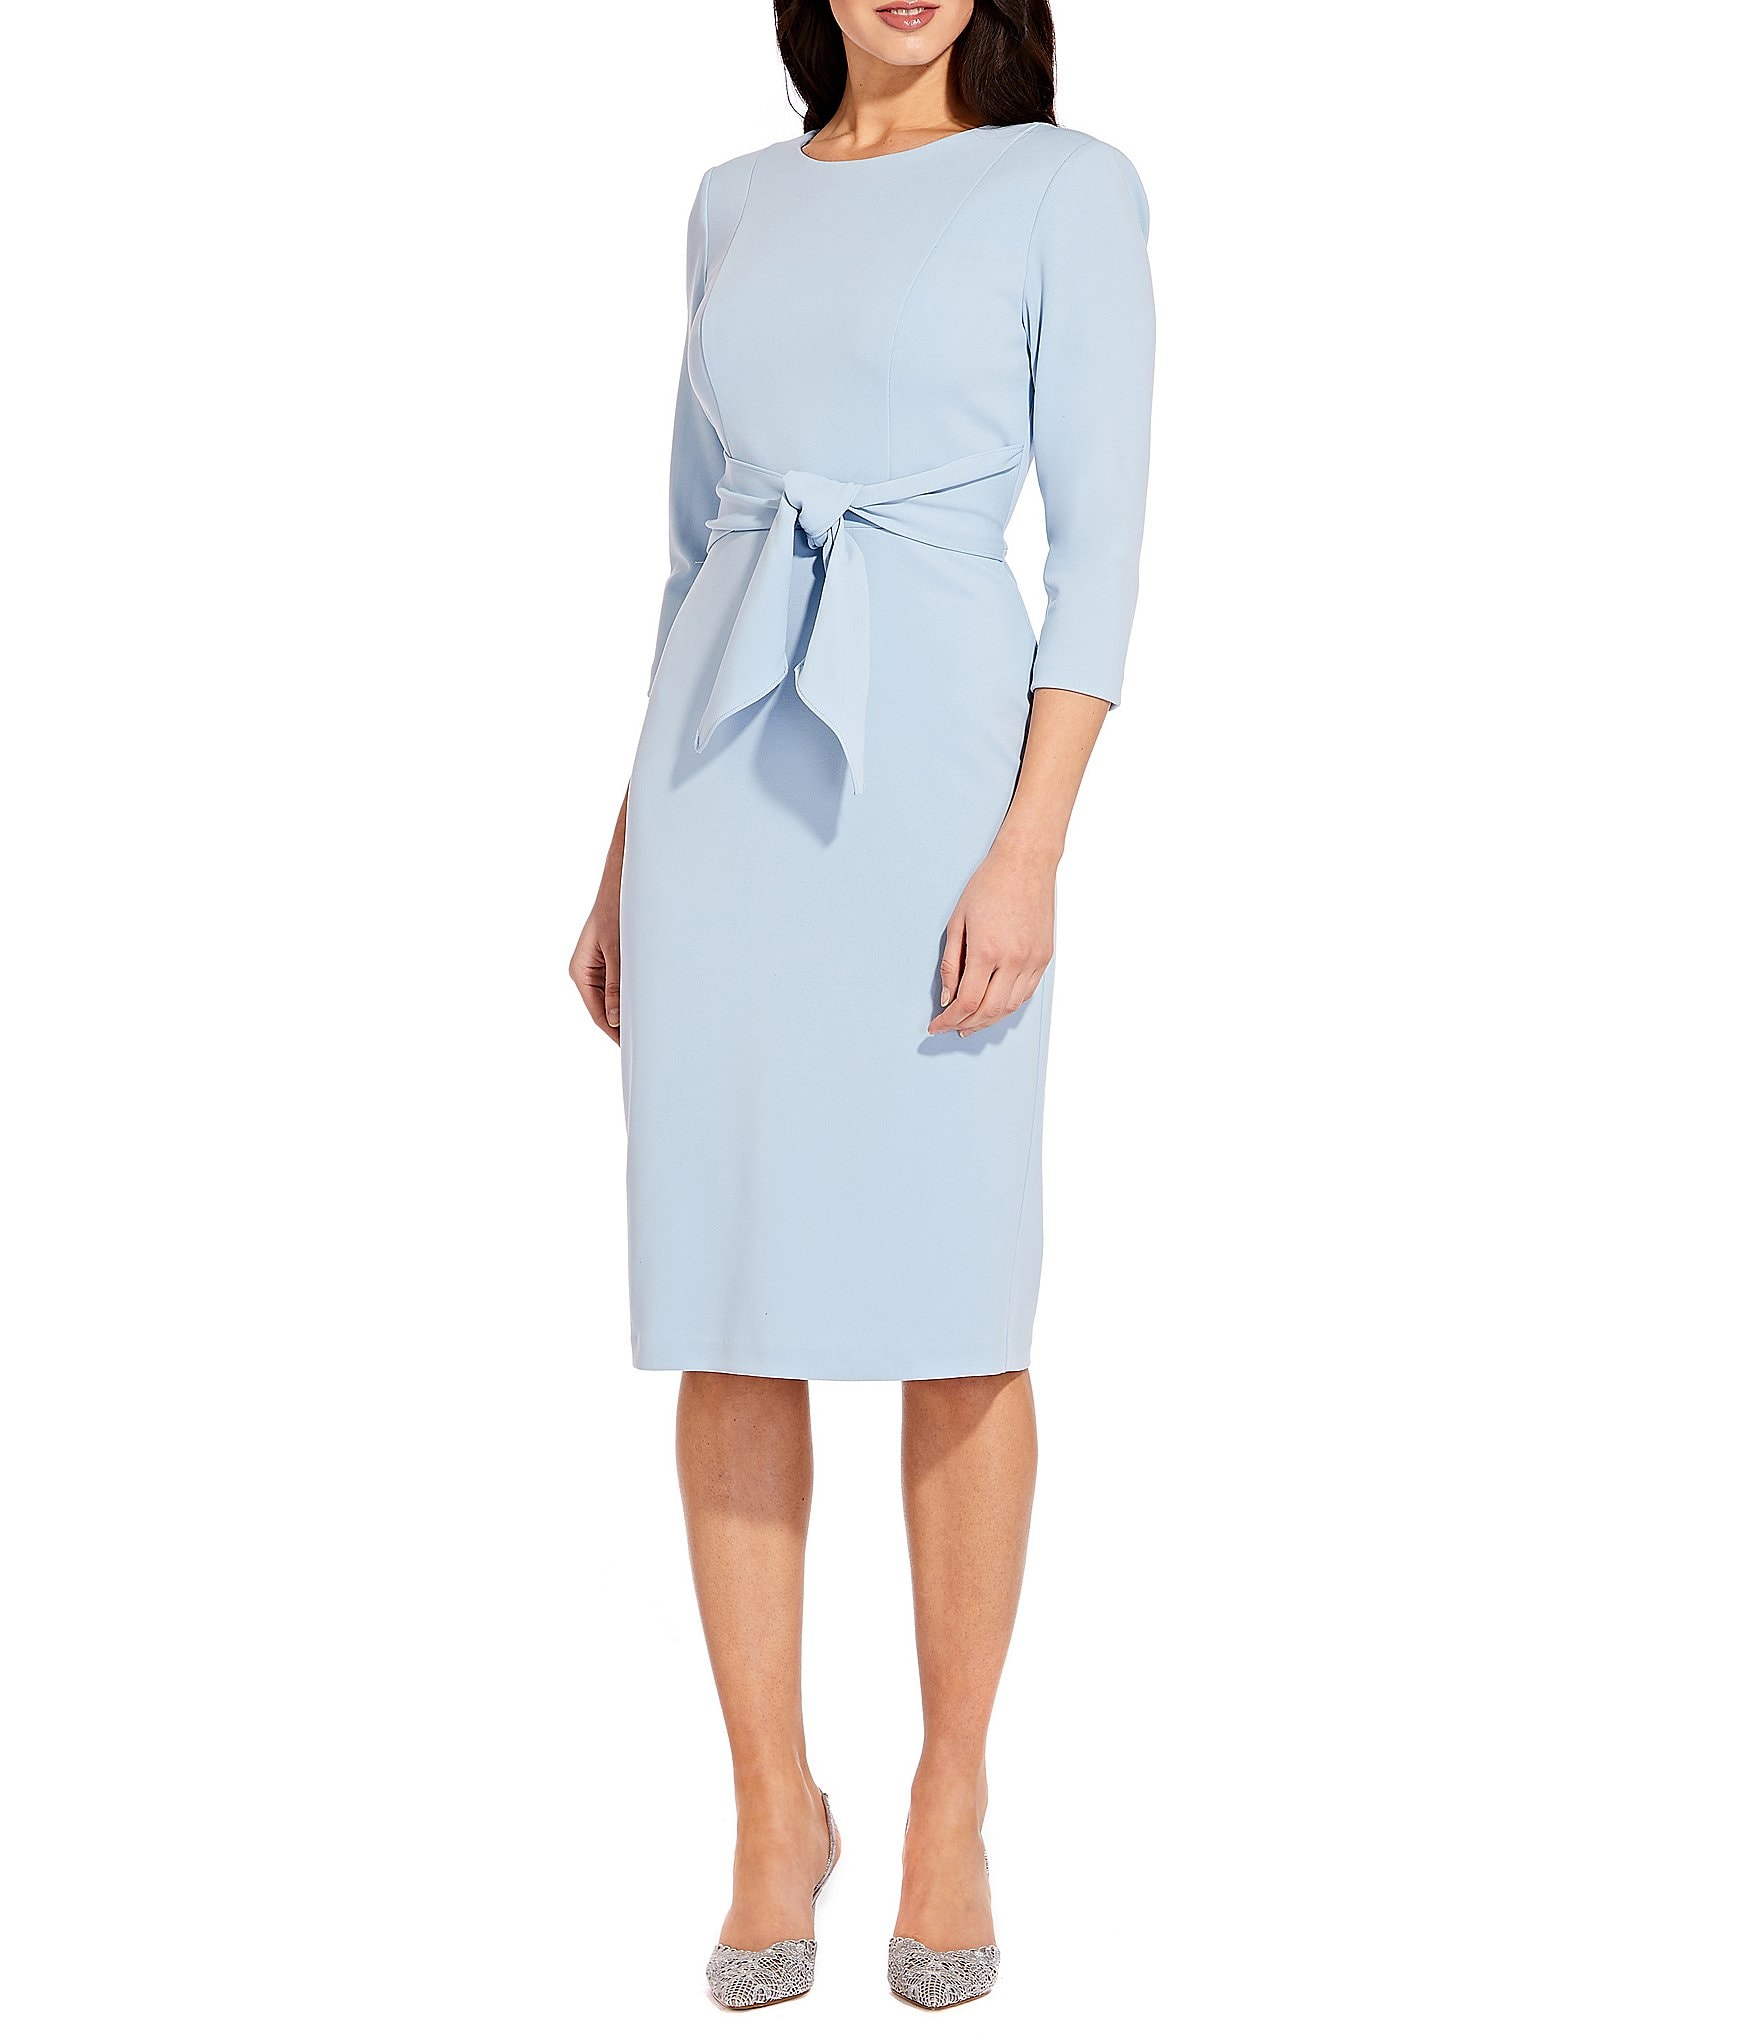 0a36fb647ed tie waist or tie front or tie back or tie sleeve or tie strap  Women s  Dresses   Gowns